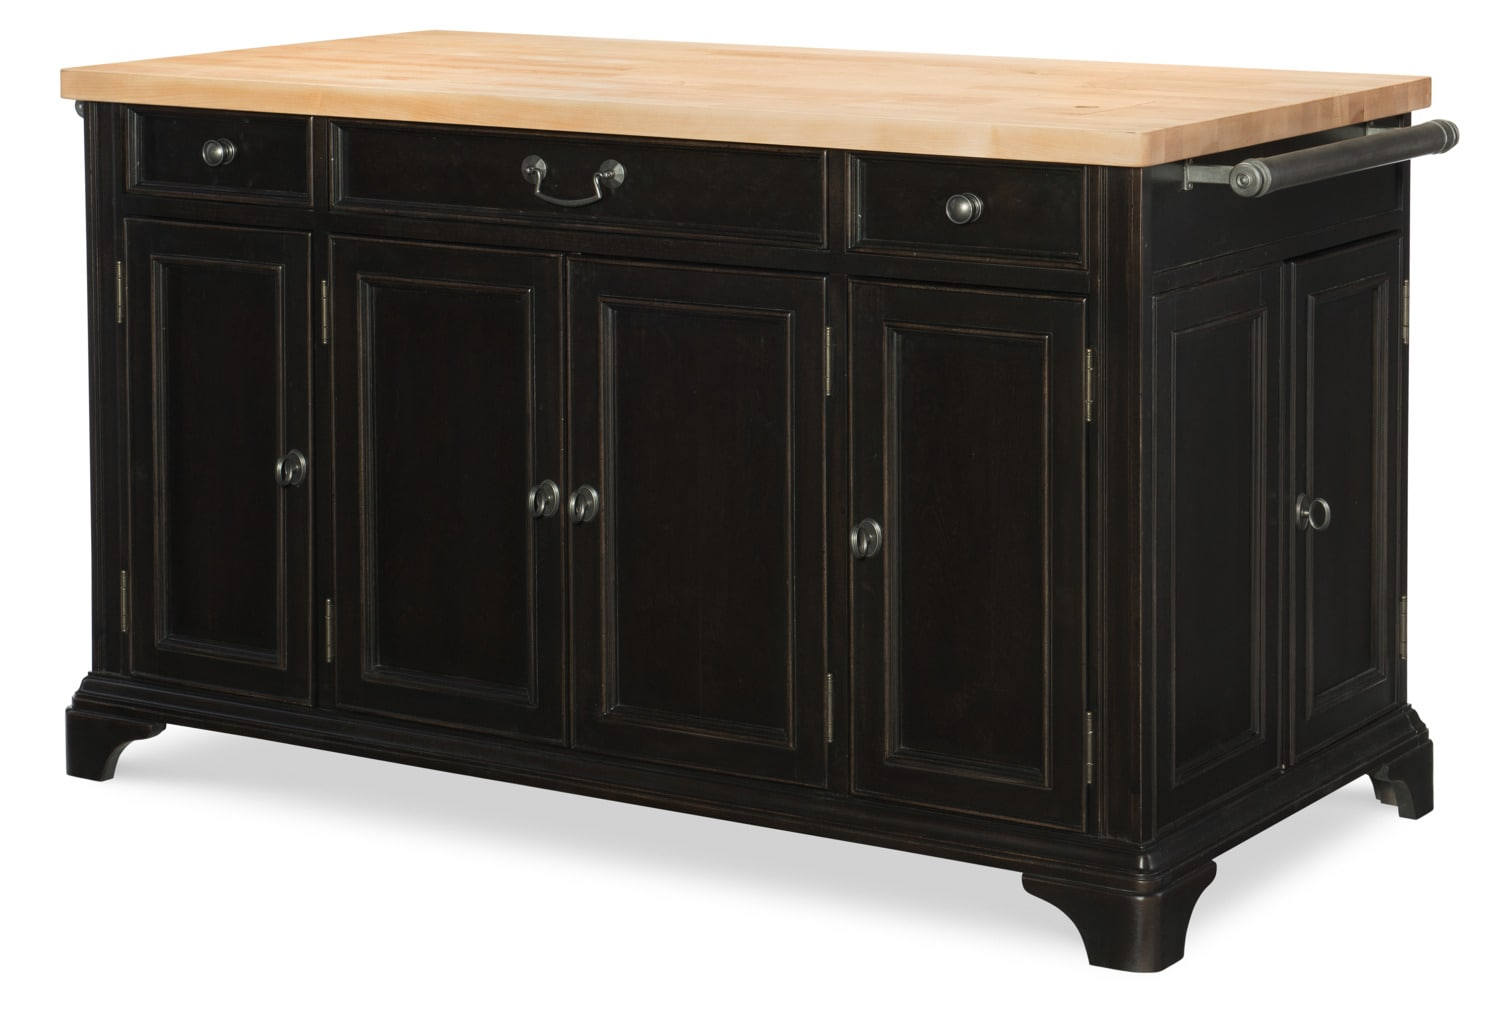 Rachael Ray Upstate Kitchen Island - Nero Black